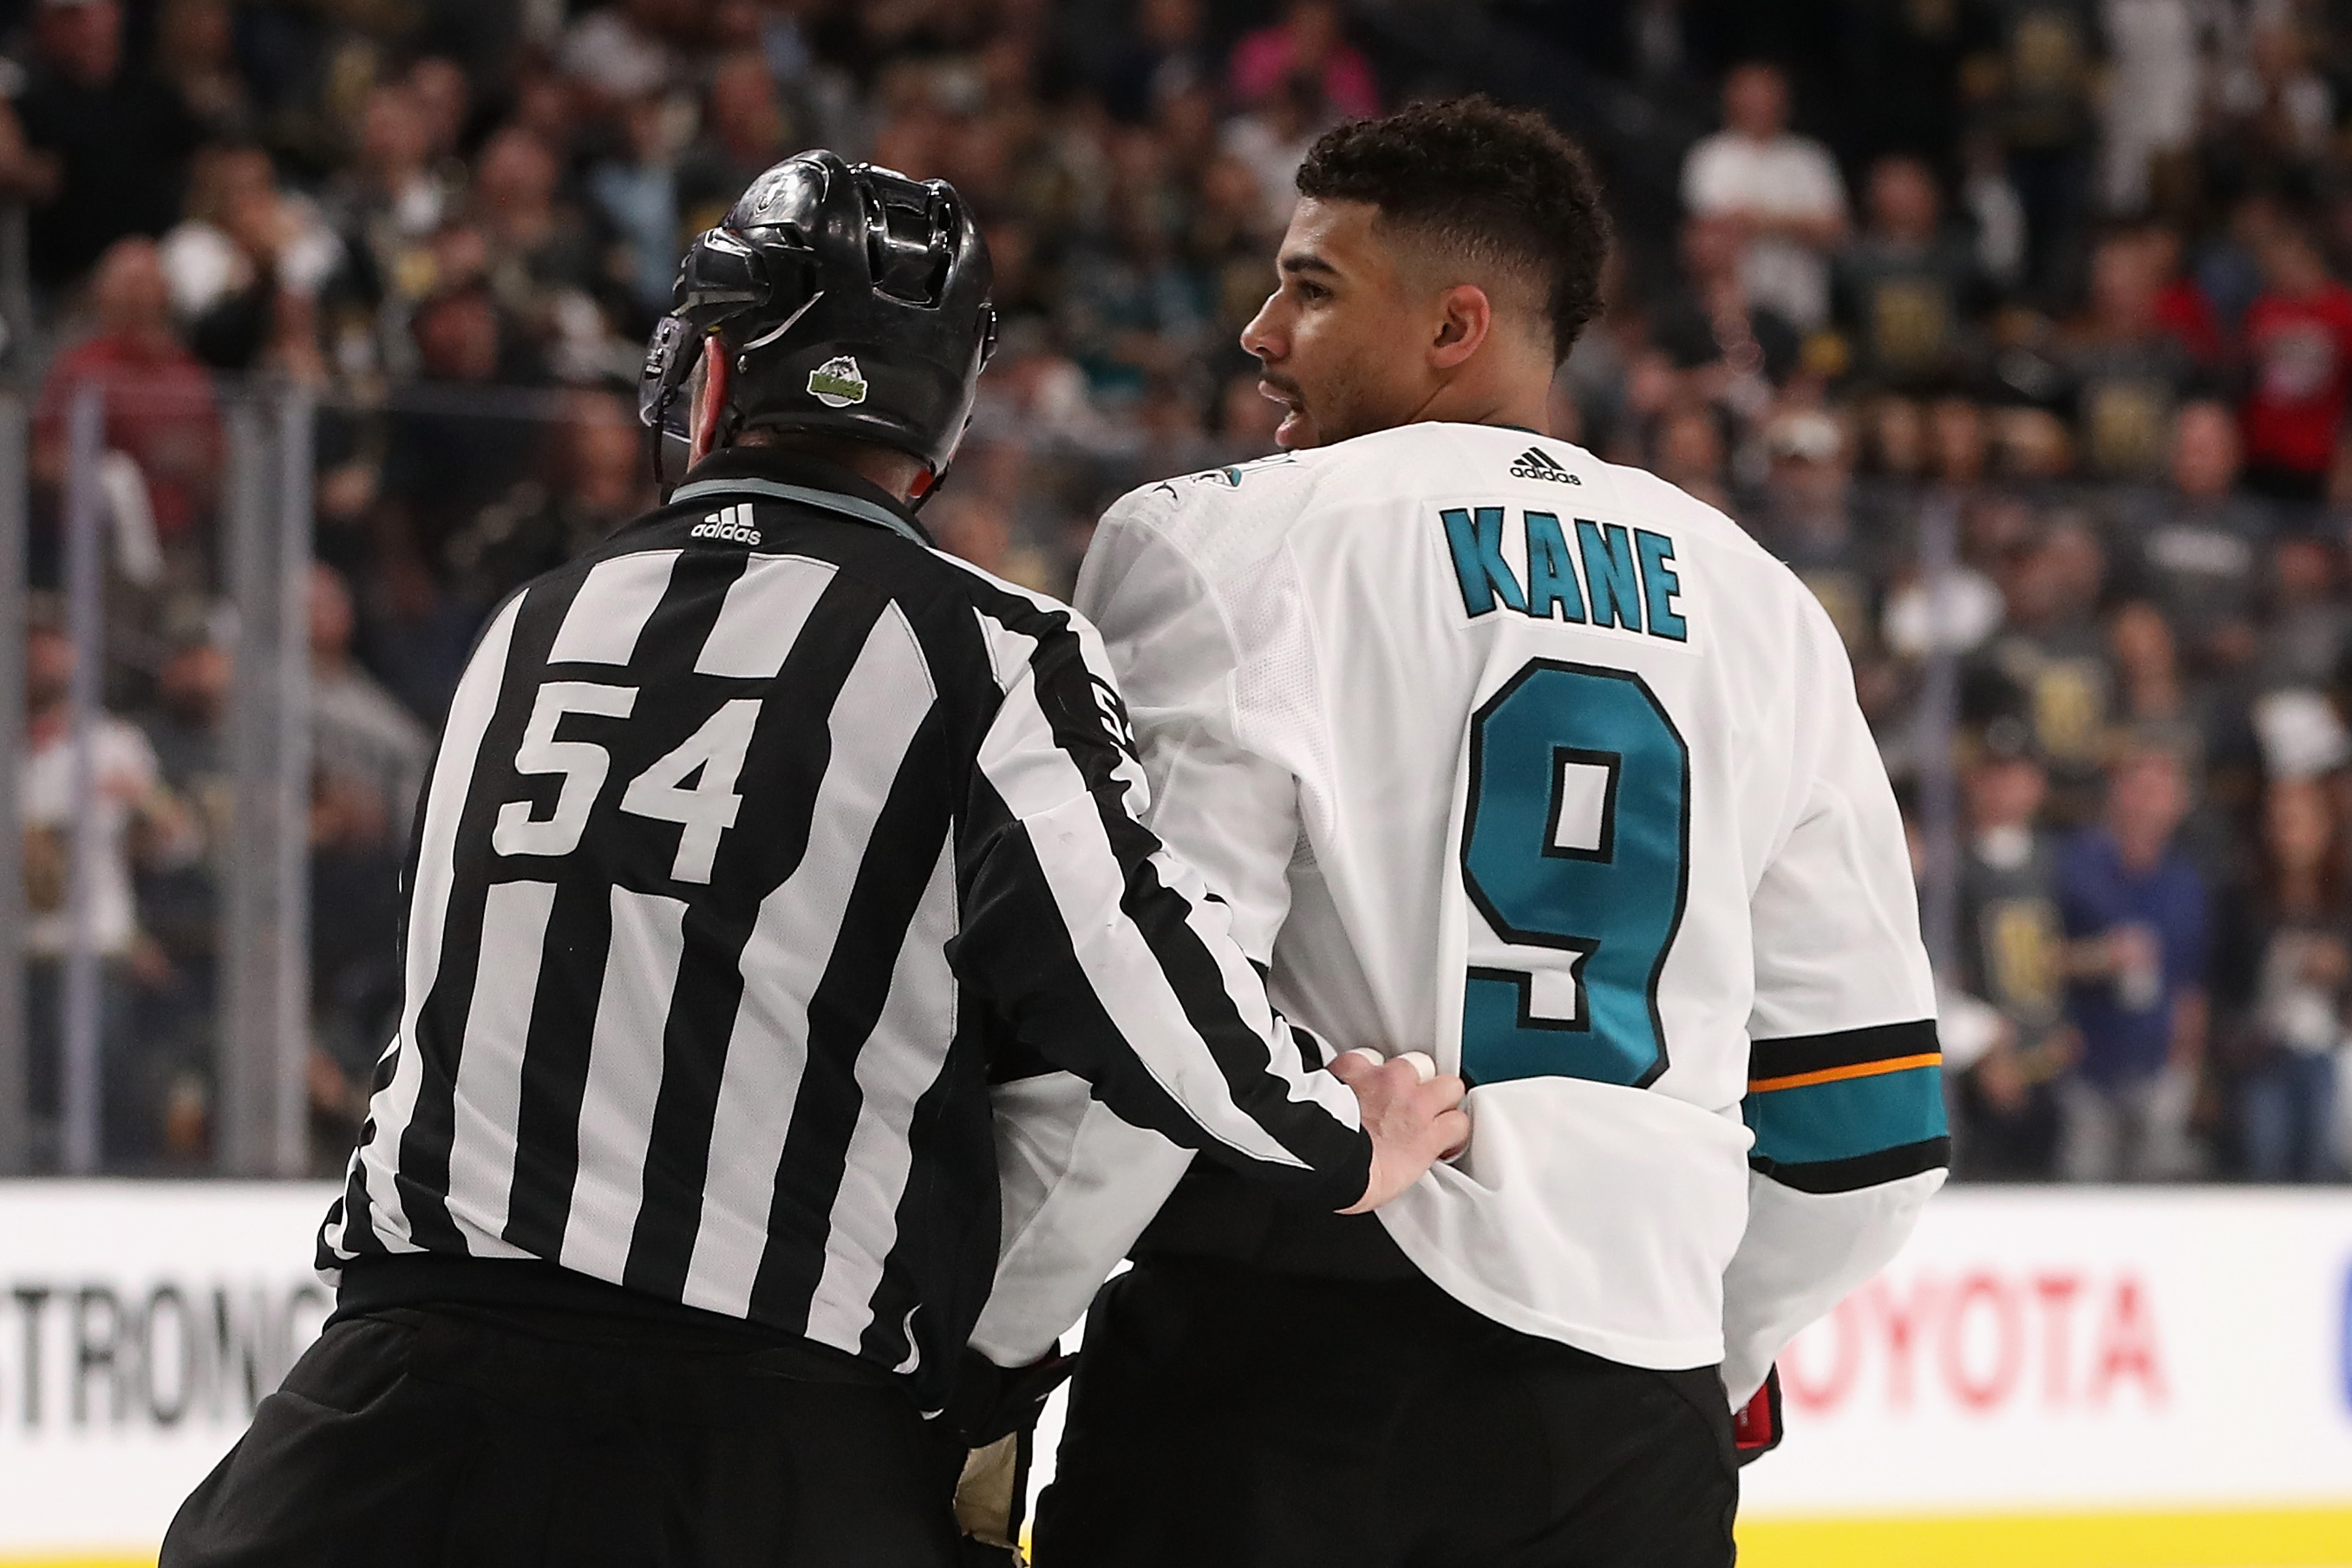 Logan Couture plays OT hero as Sharks end Golden Knights' playoff streak